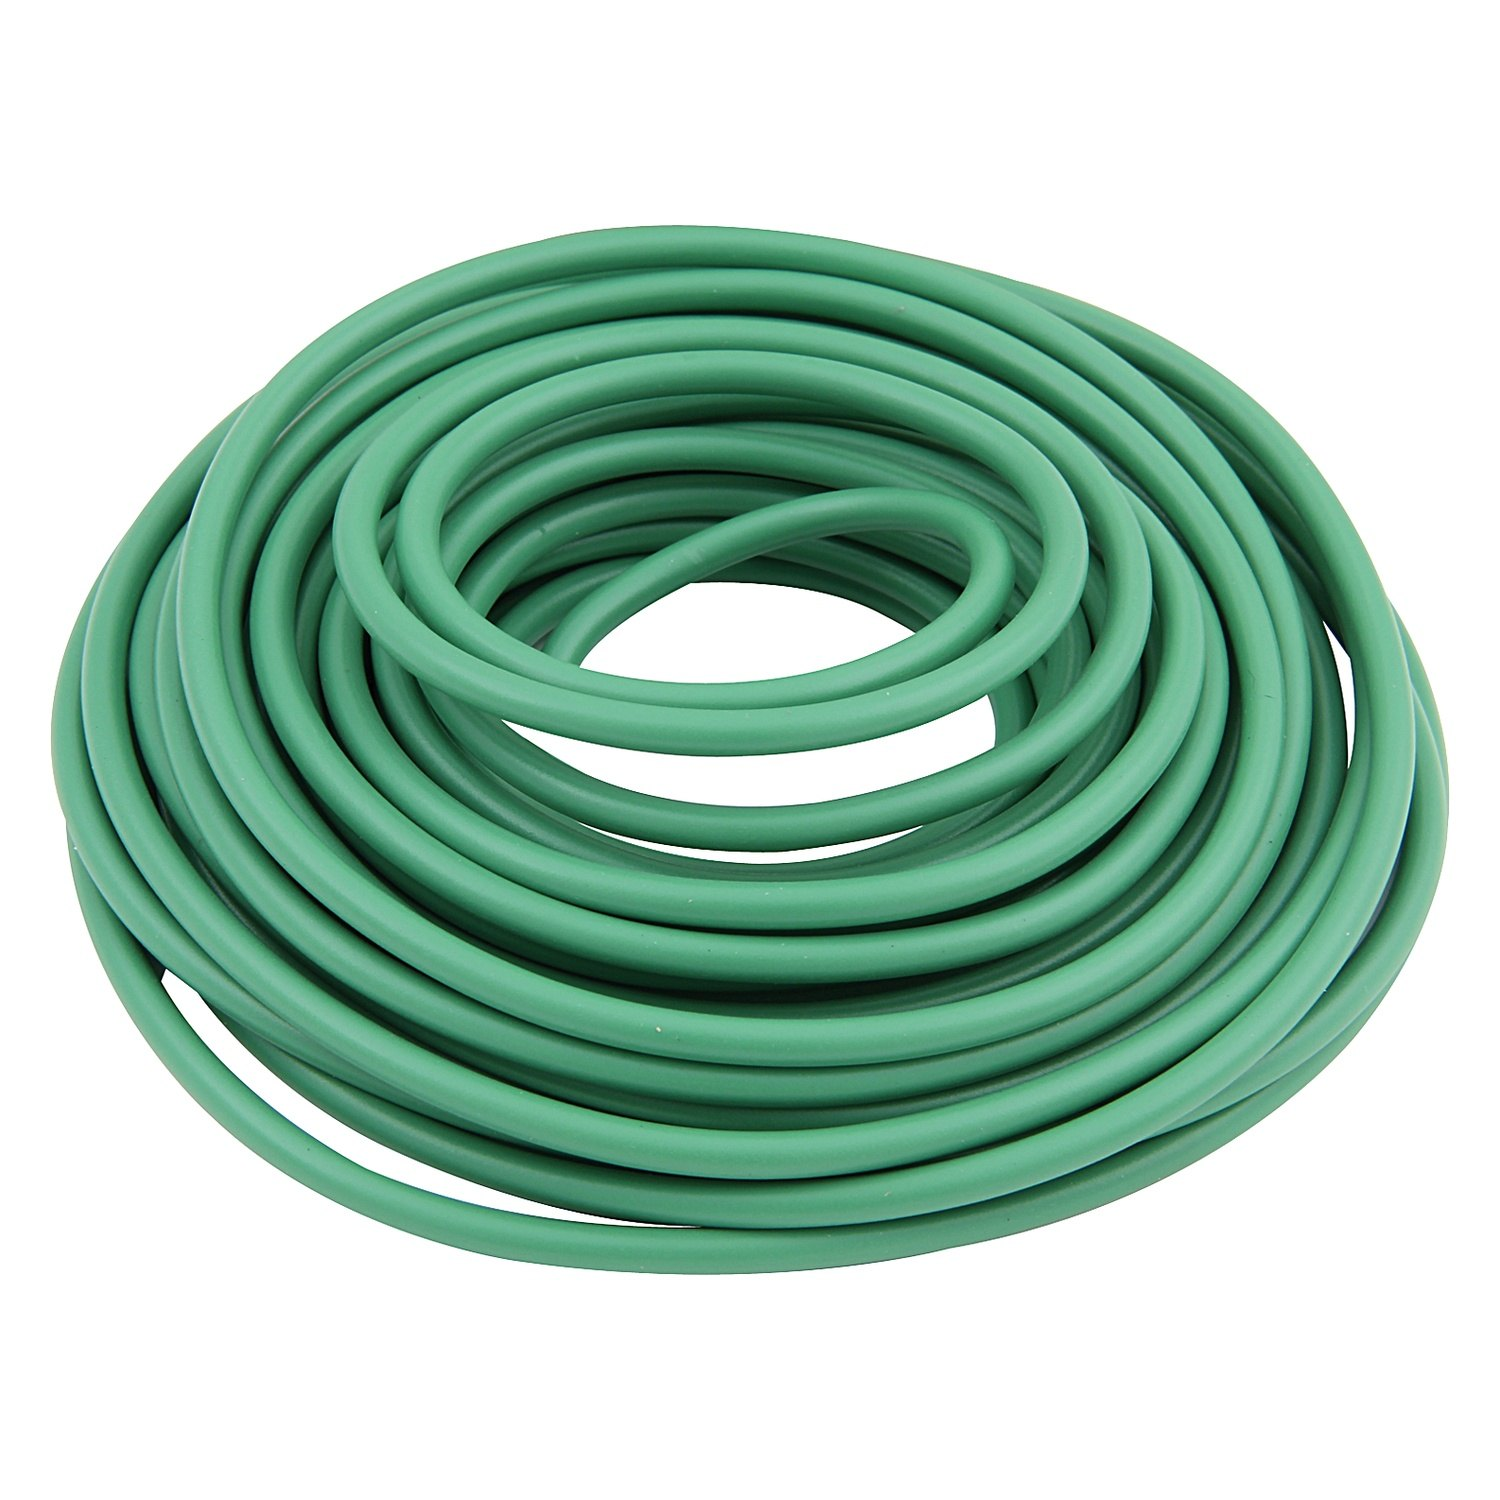 AllStar Performance® ALL76503 - 50\' 20 Gauge Coil Green Primary Wire ...